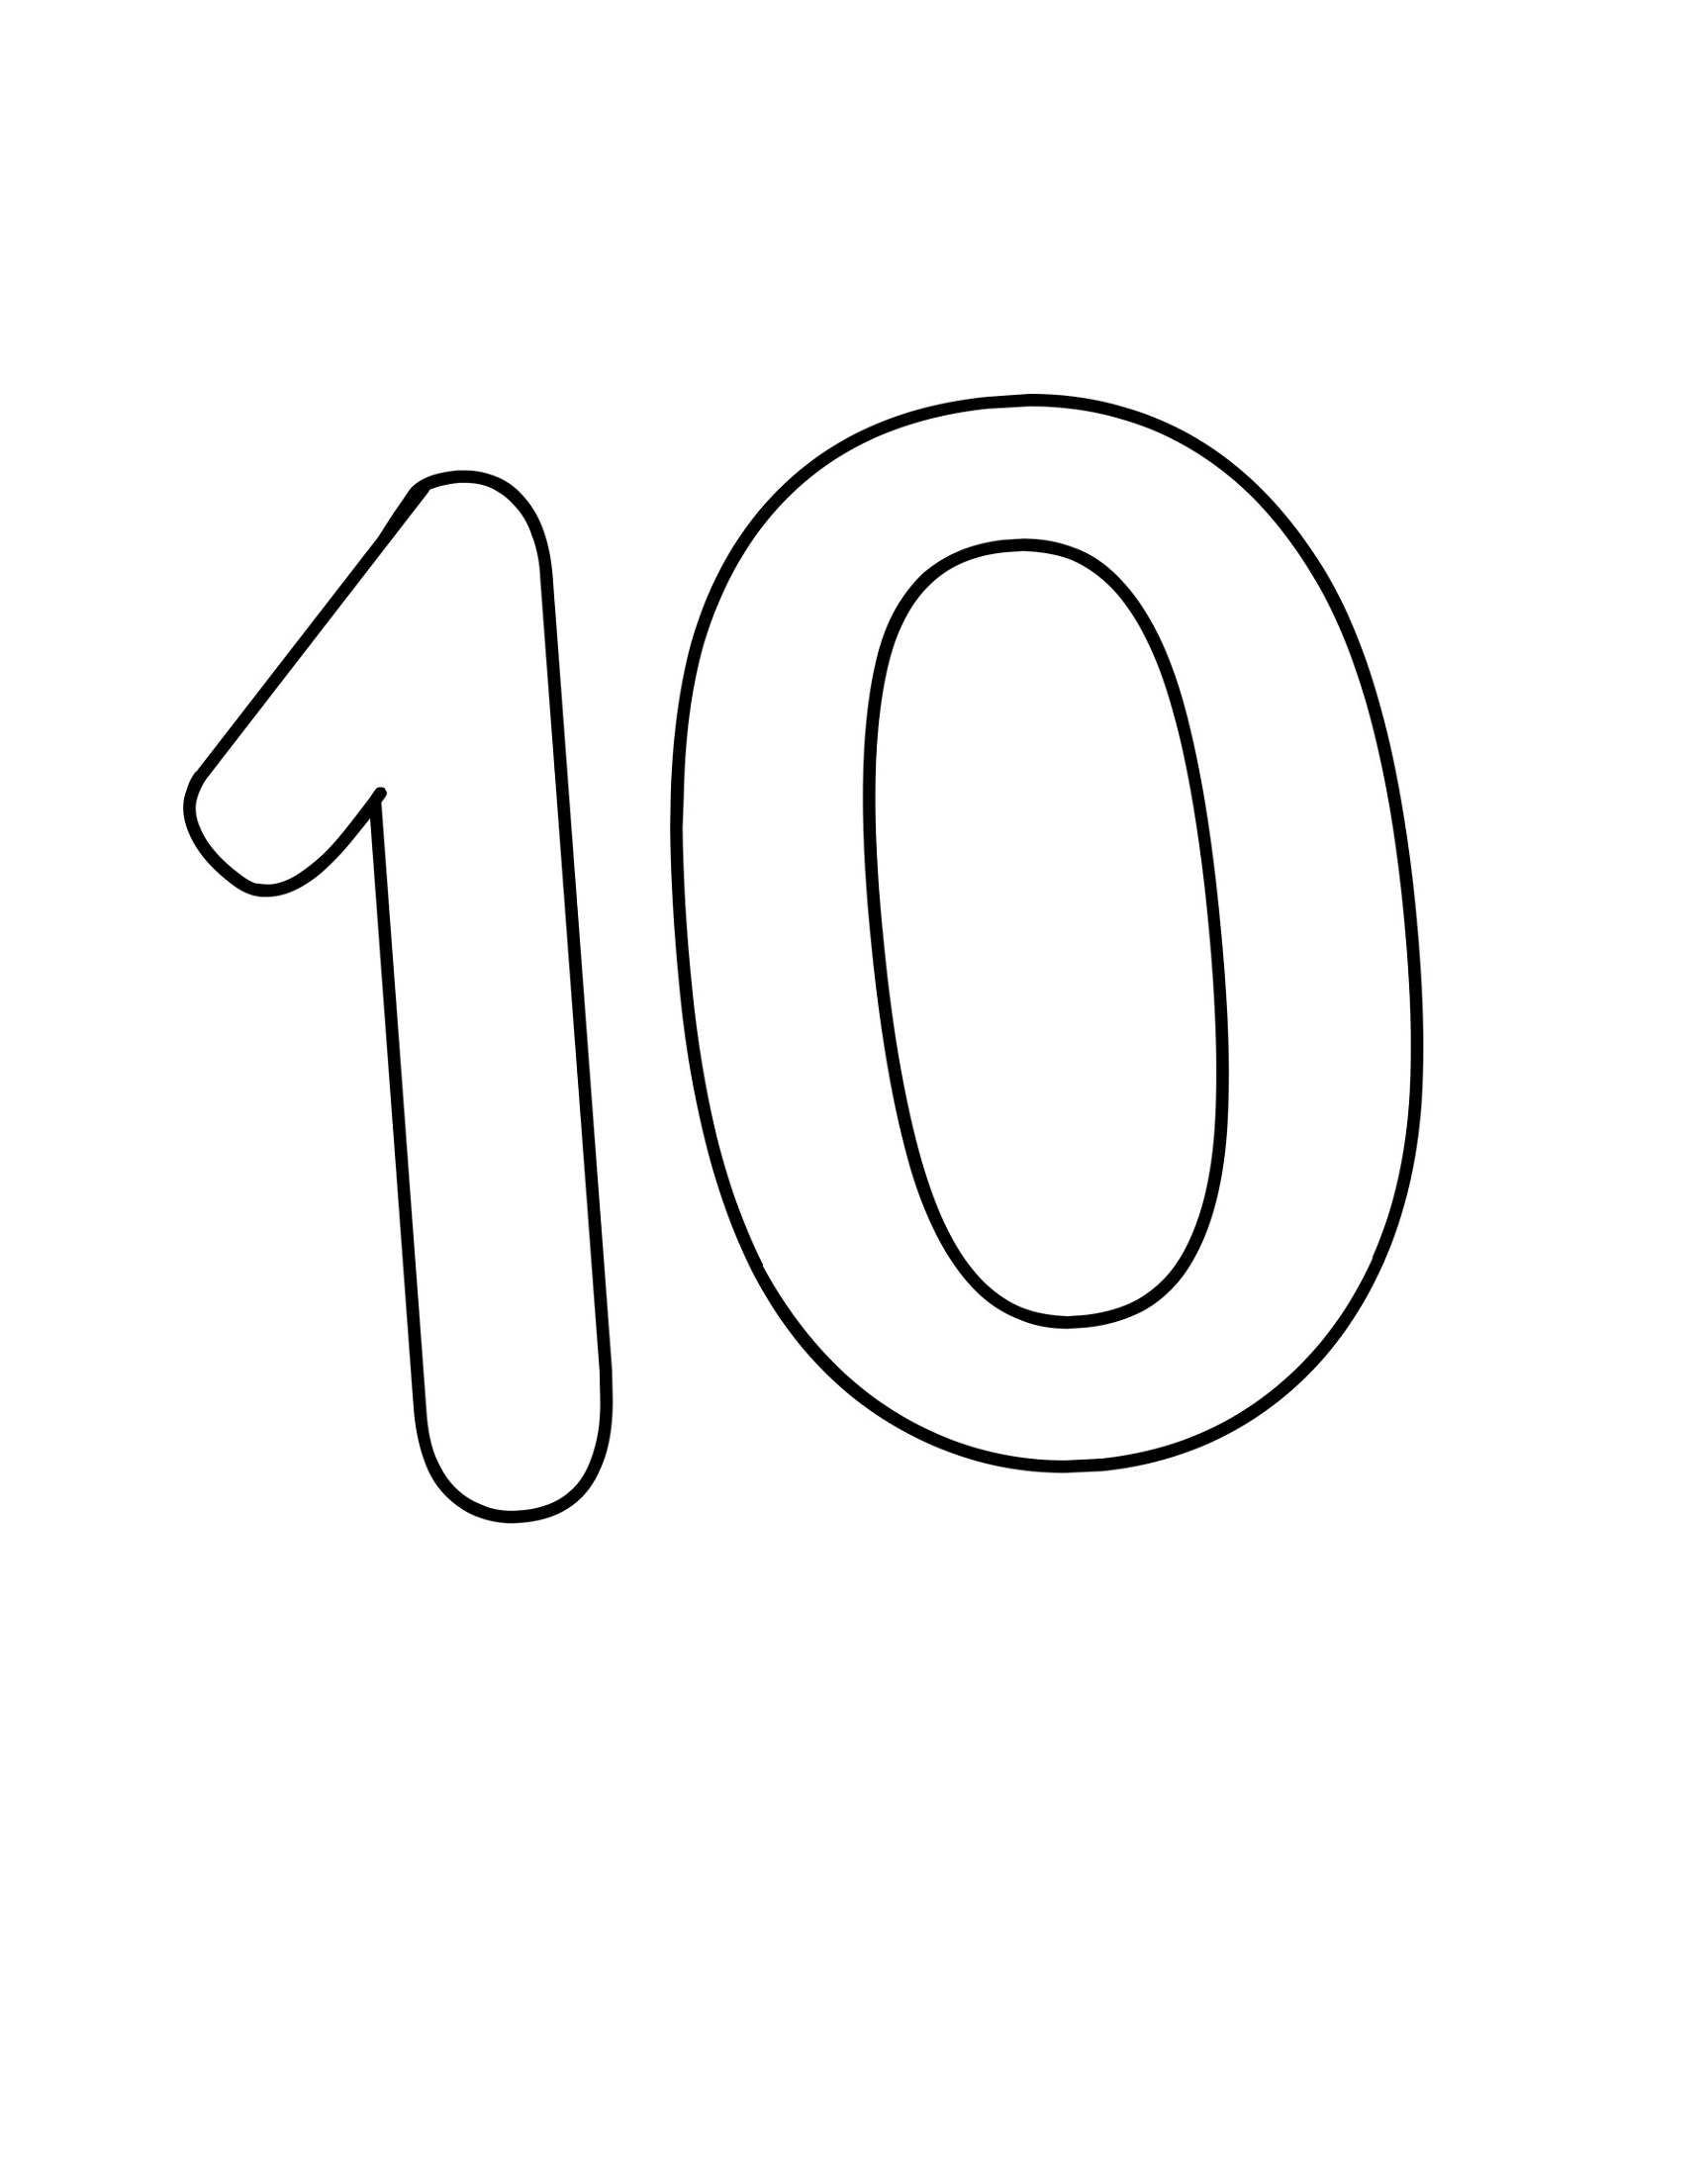 Printable Pictures Of Number 10